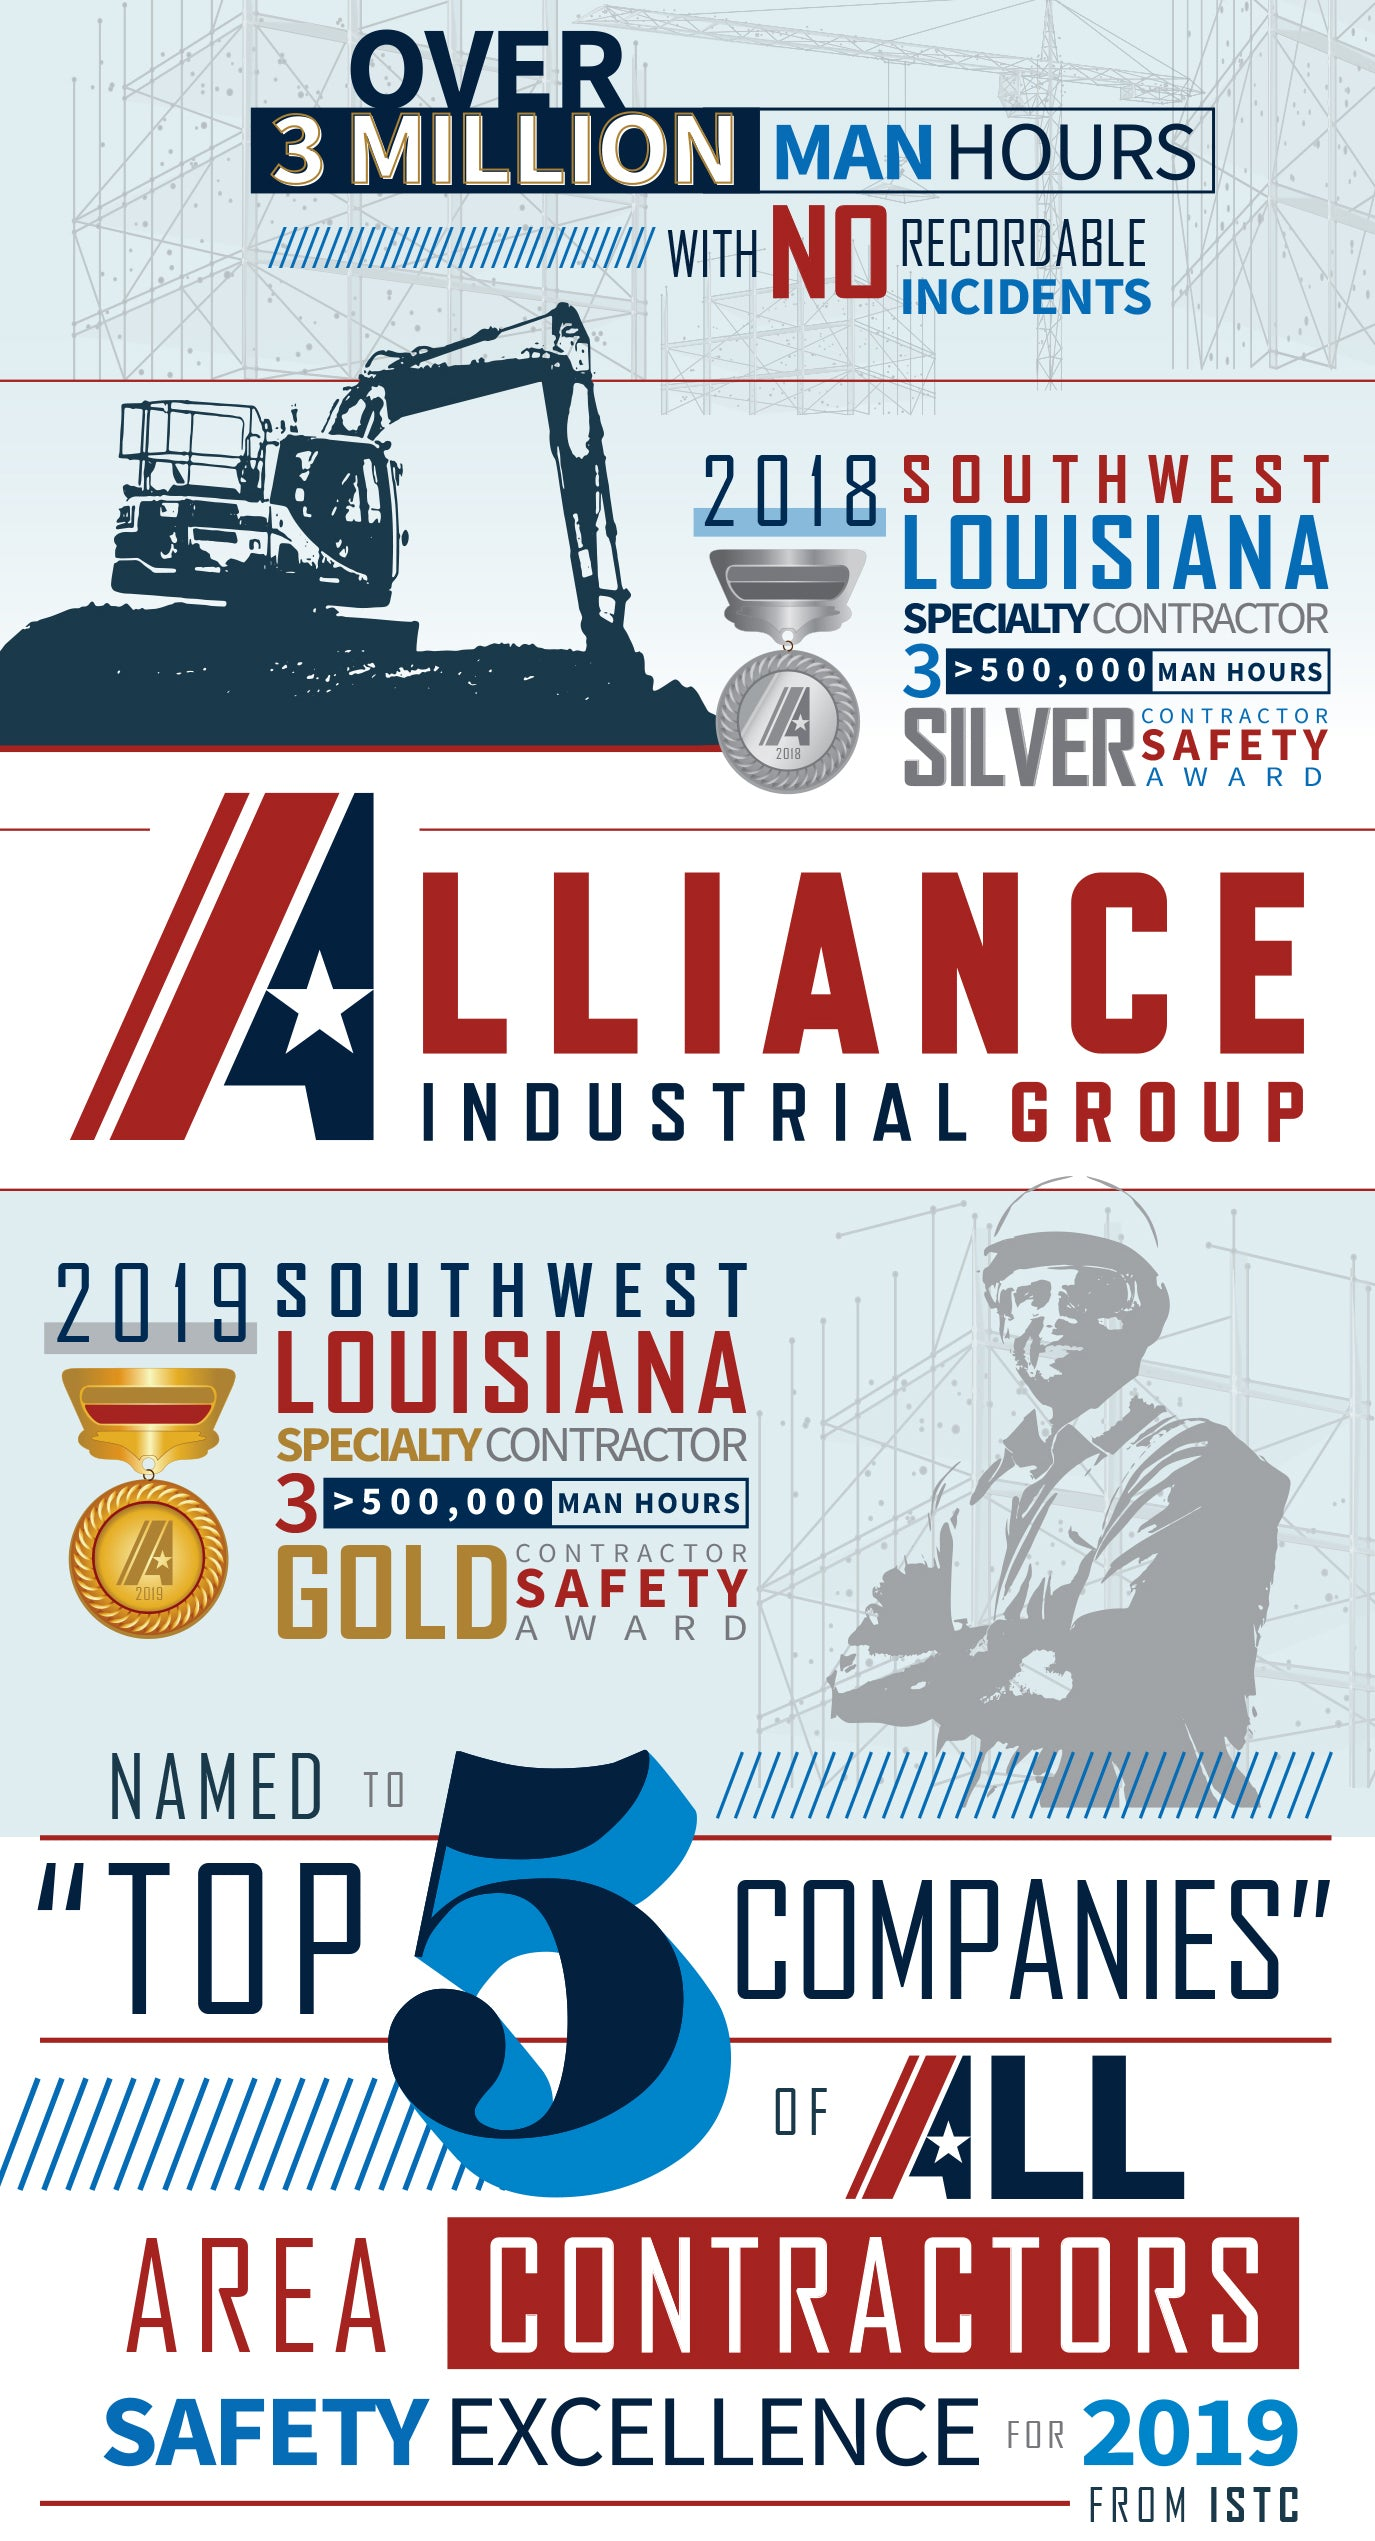 Alliance Industrial Group Infographic